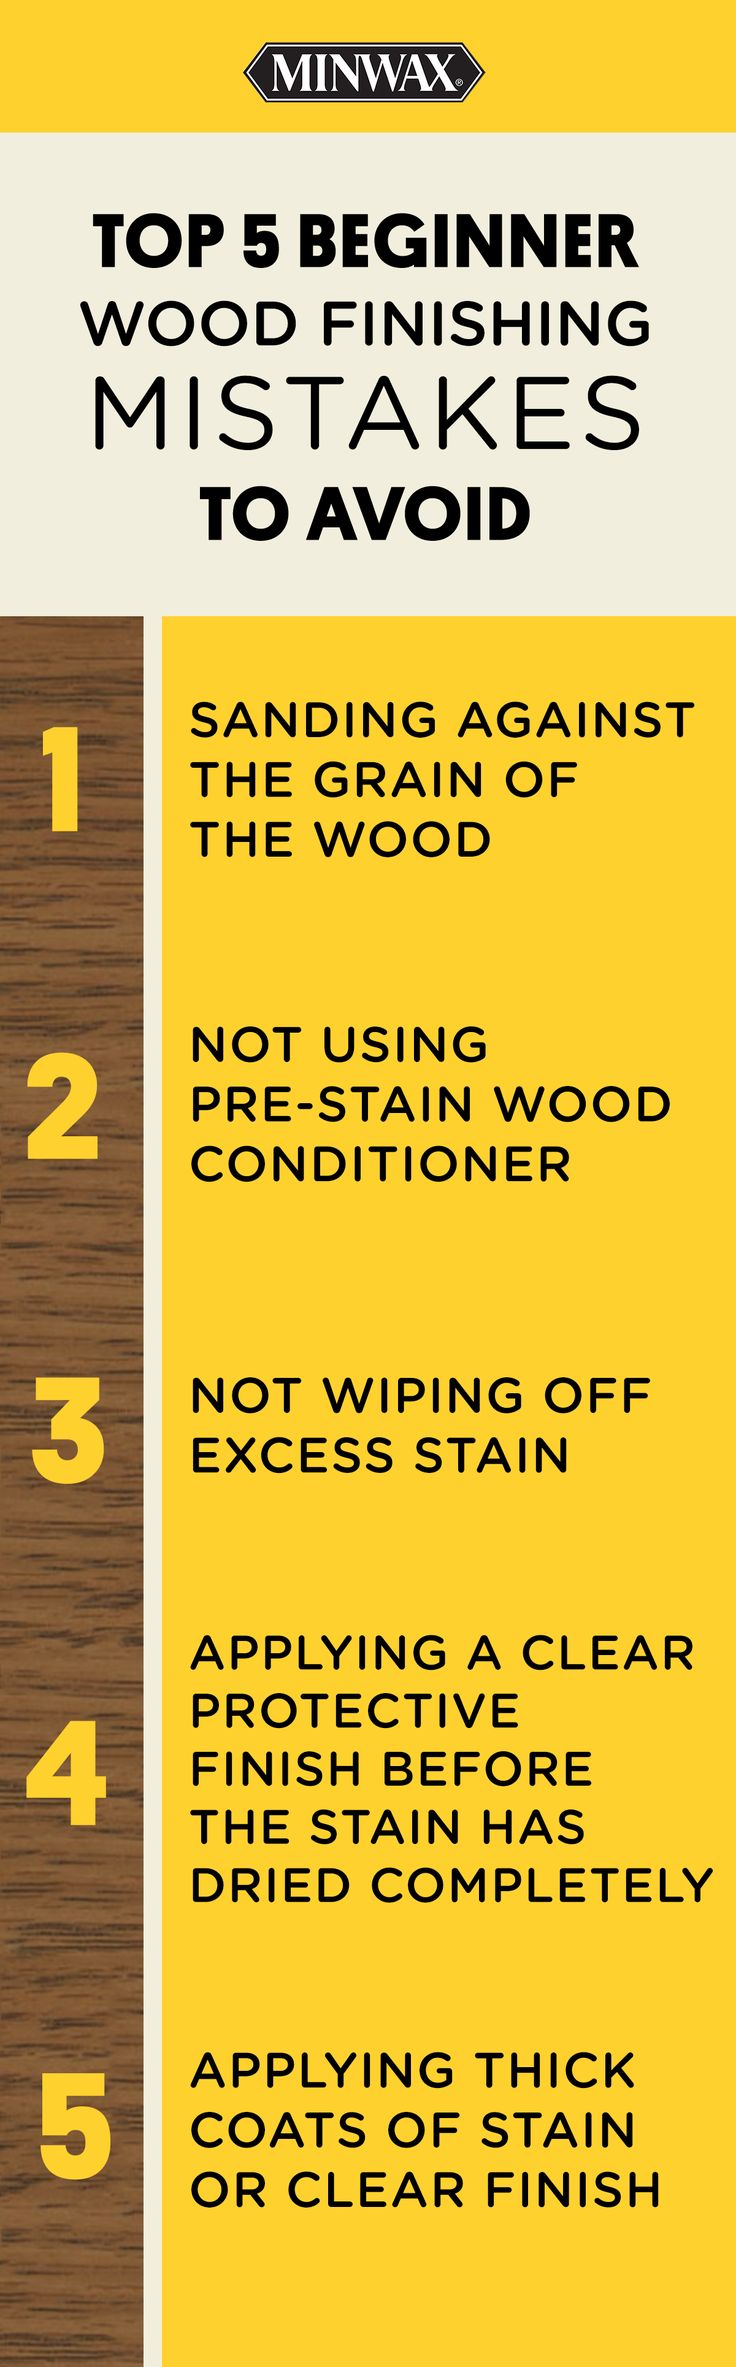 Are you new to wood finishing? Make sure to avoid these mistakes to get the best results. Click for more tips and DIY ideas from Minwax® wood finishing expert Bruce Johnson.